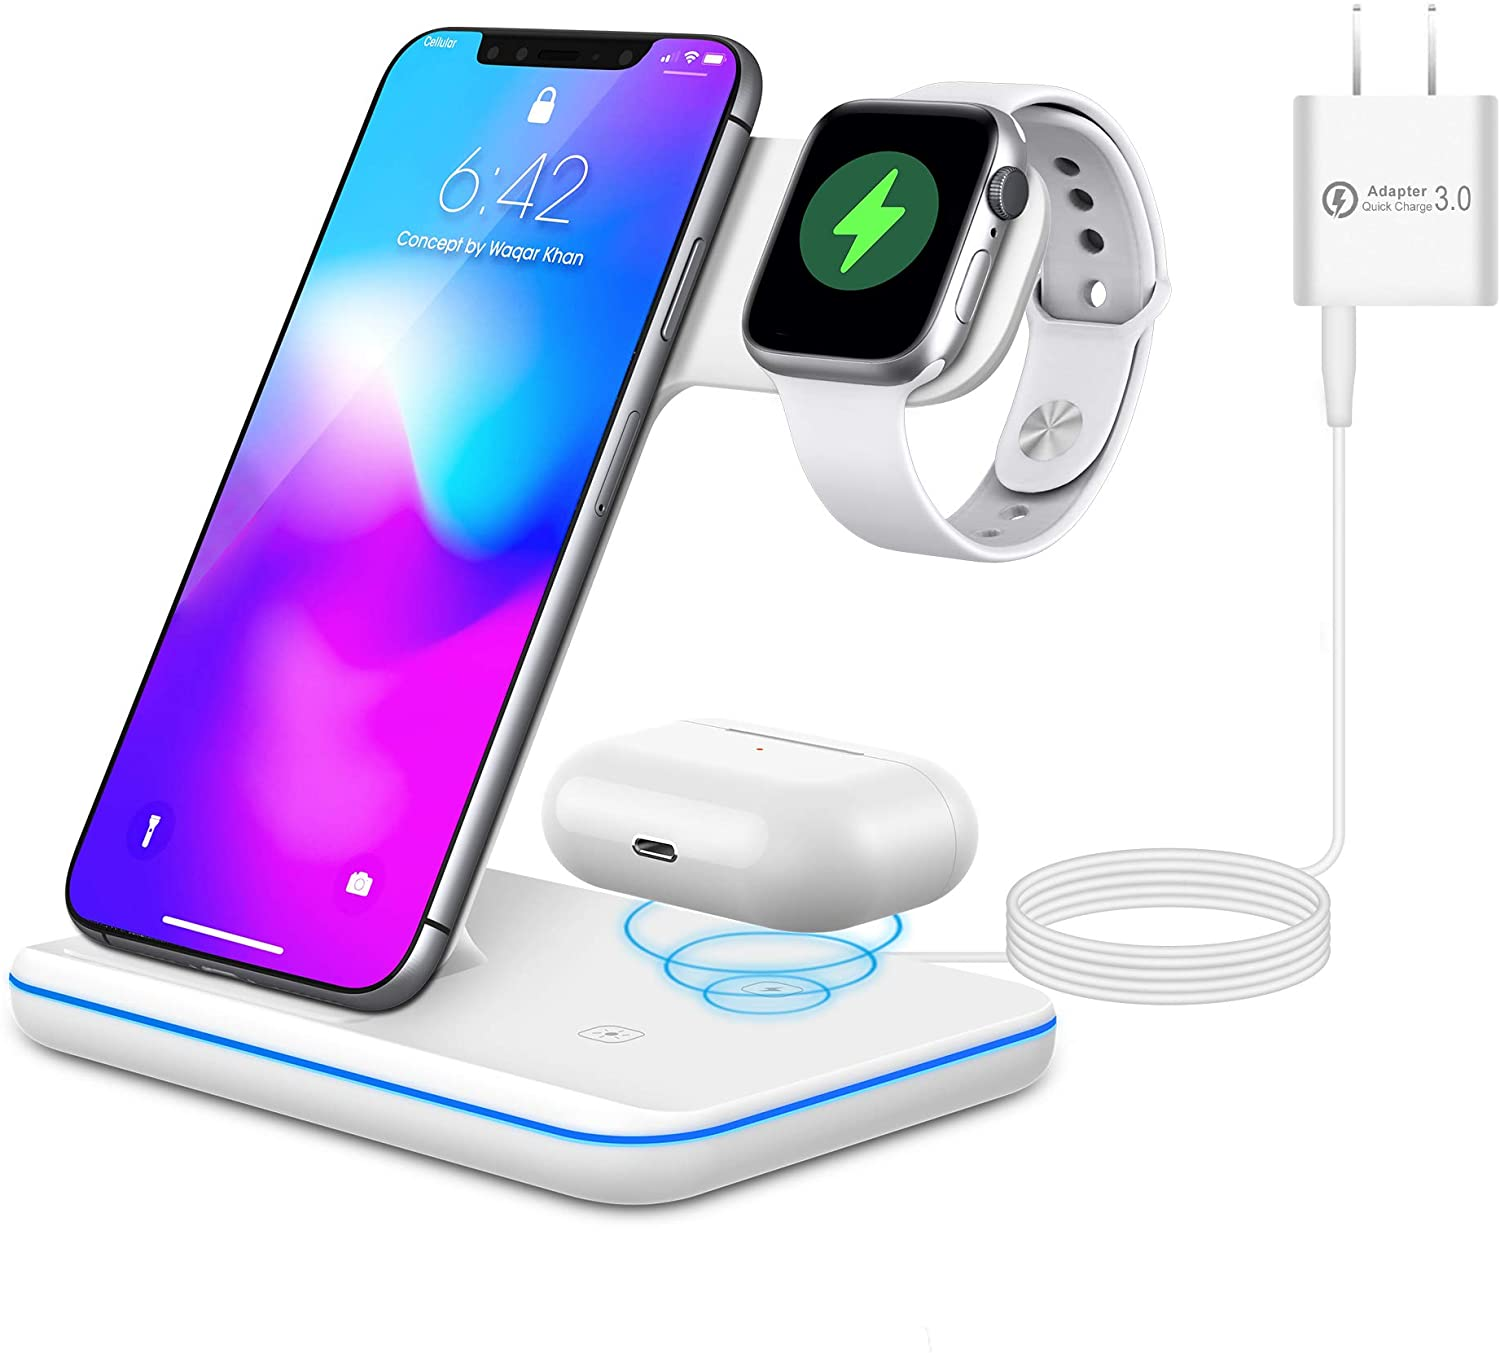 Wireless Charging Station, 3 in 1 Fast Wireless Charger Stand for iPhone/Apple Watch/Airpod, Compatible with Other Qi-Certified Phones(White)